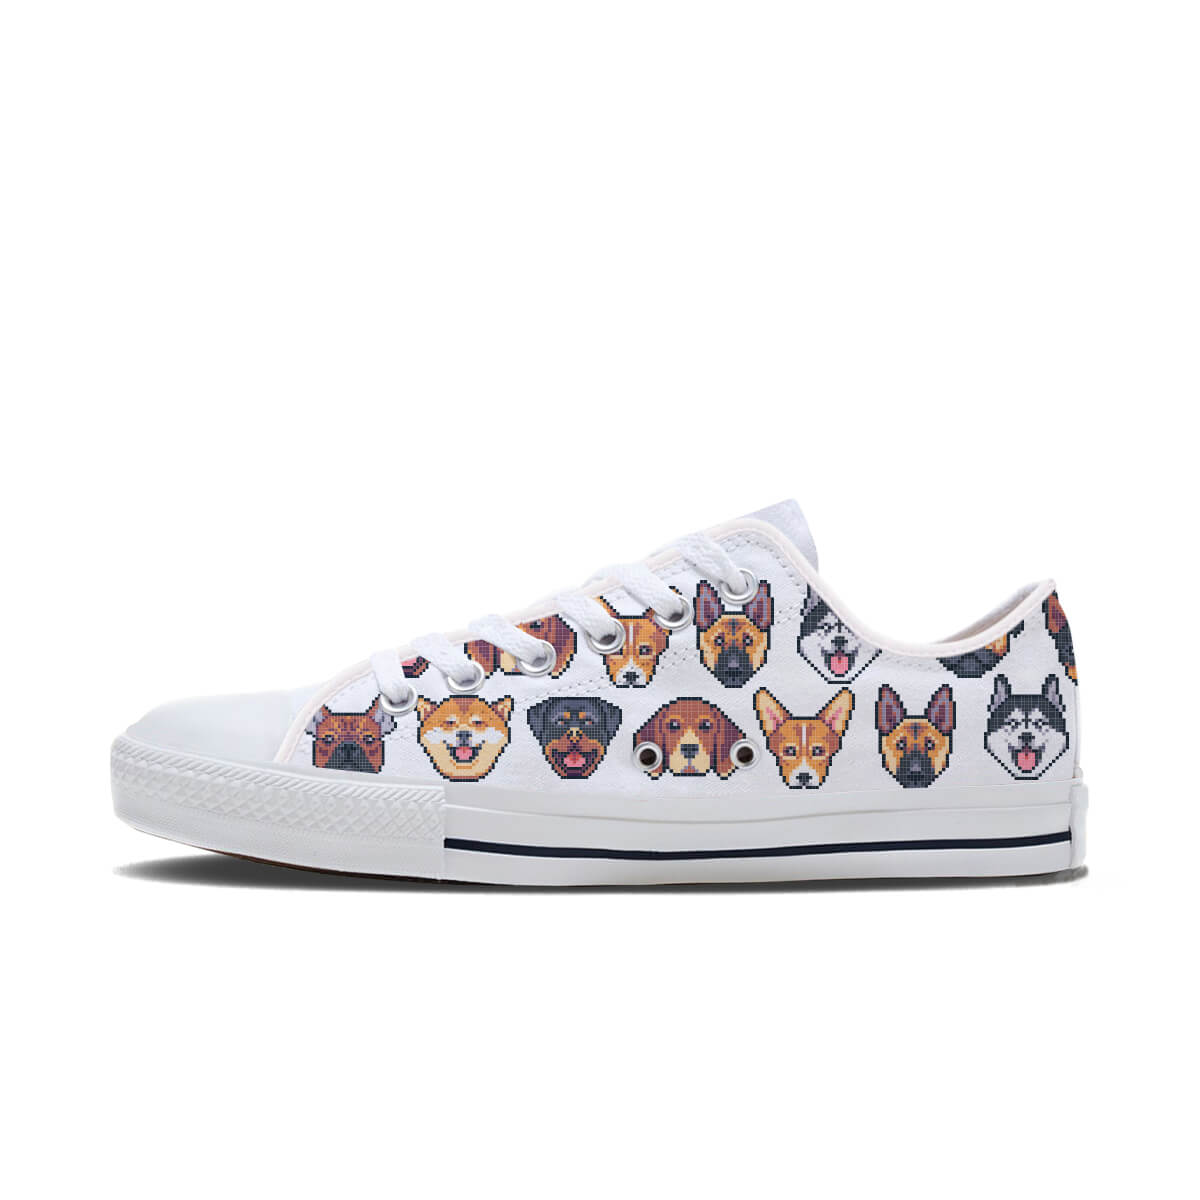 8Bit Dog Shoes - 24 Style